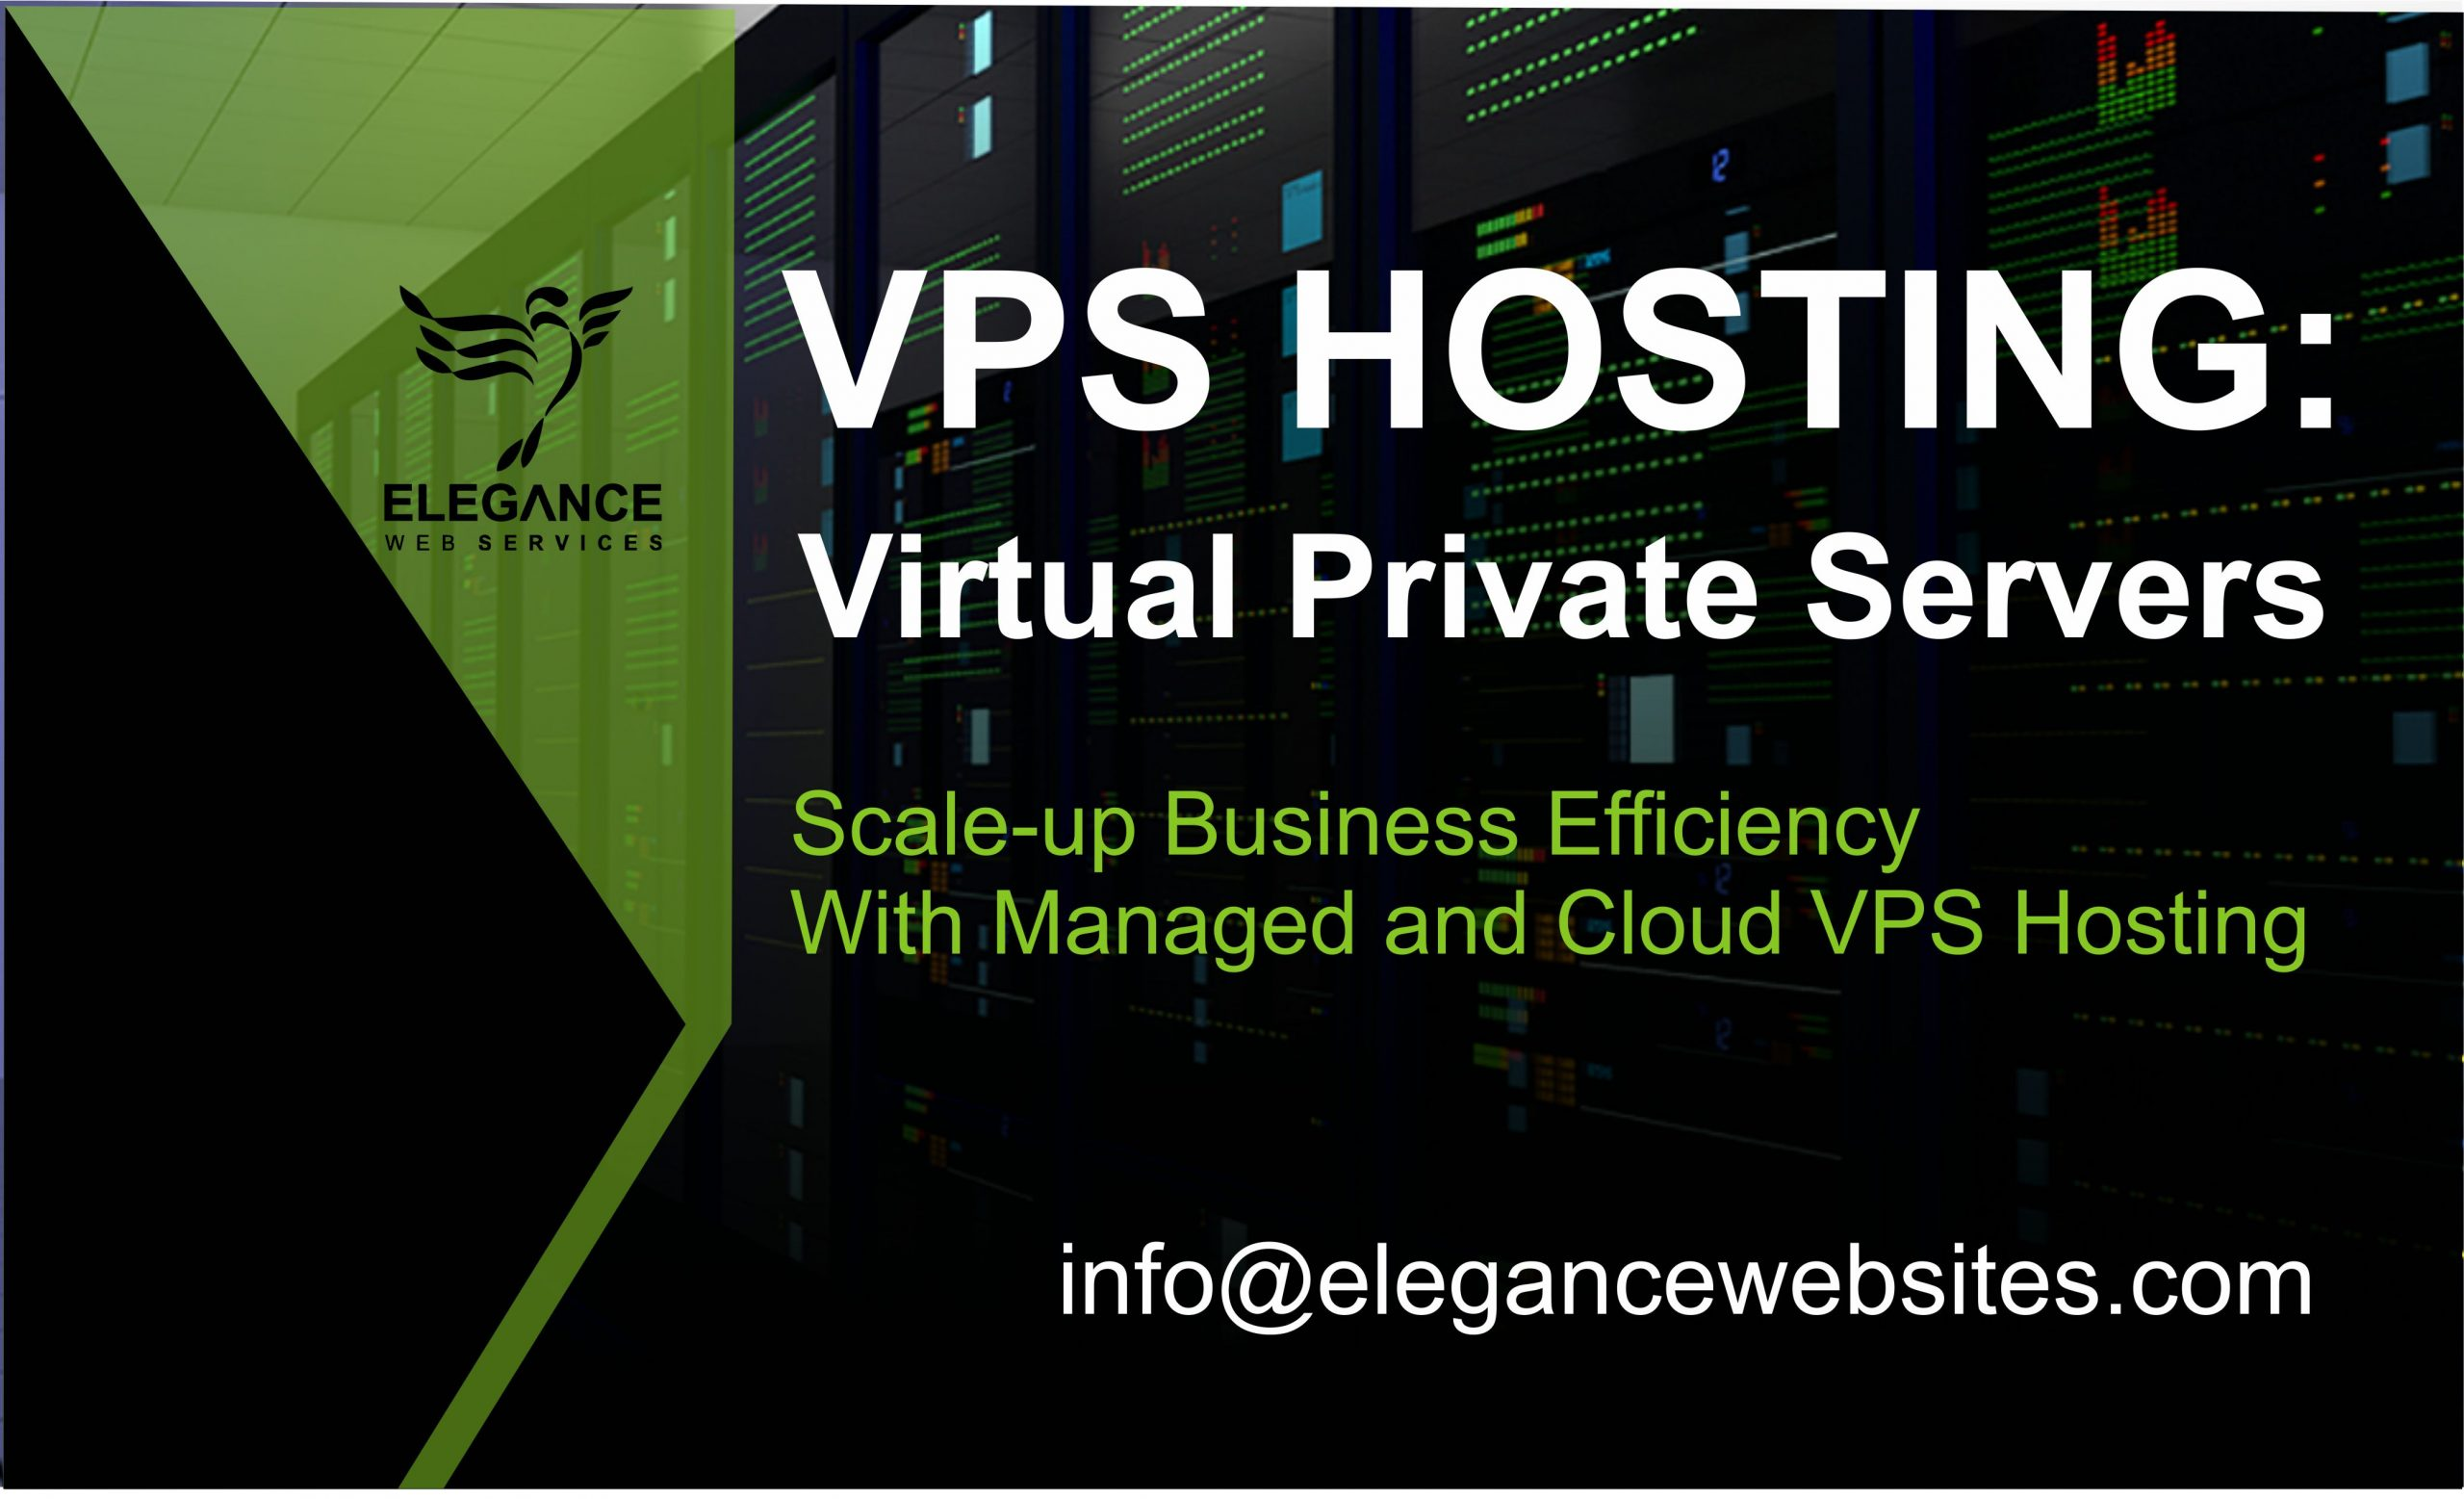 VPS Hosting: Virtual Private Servers